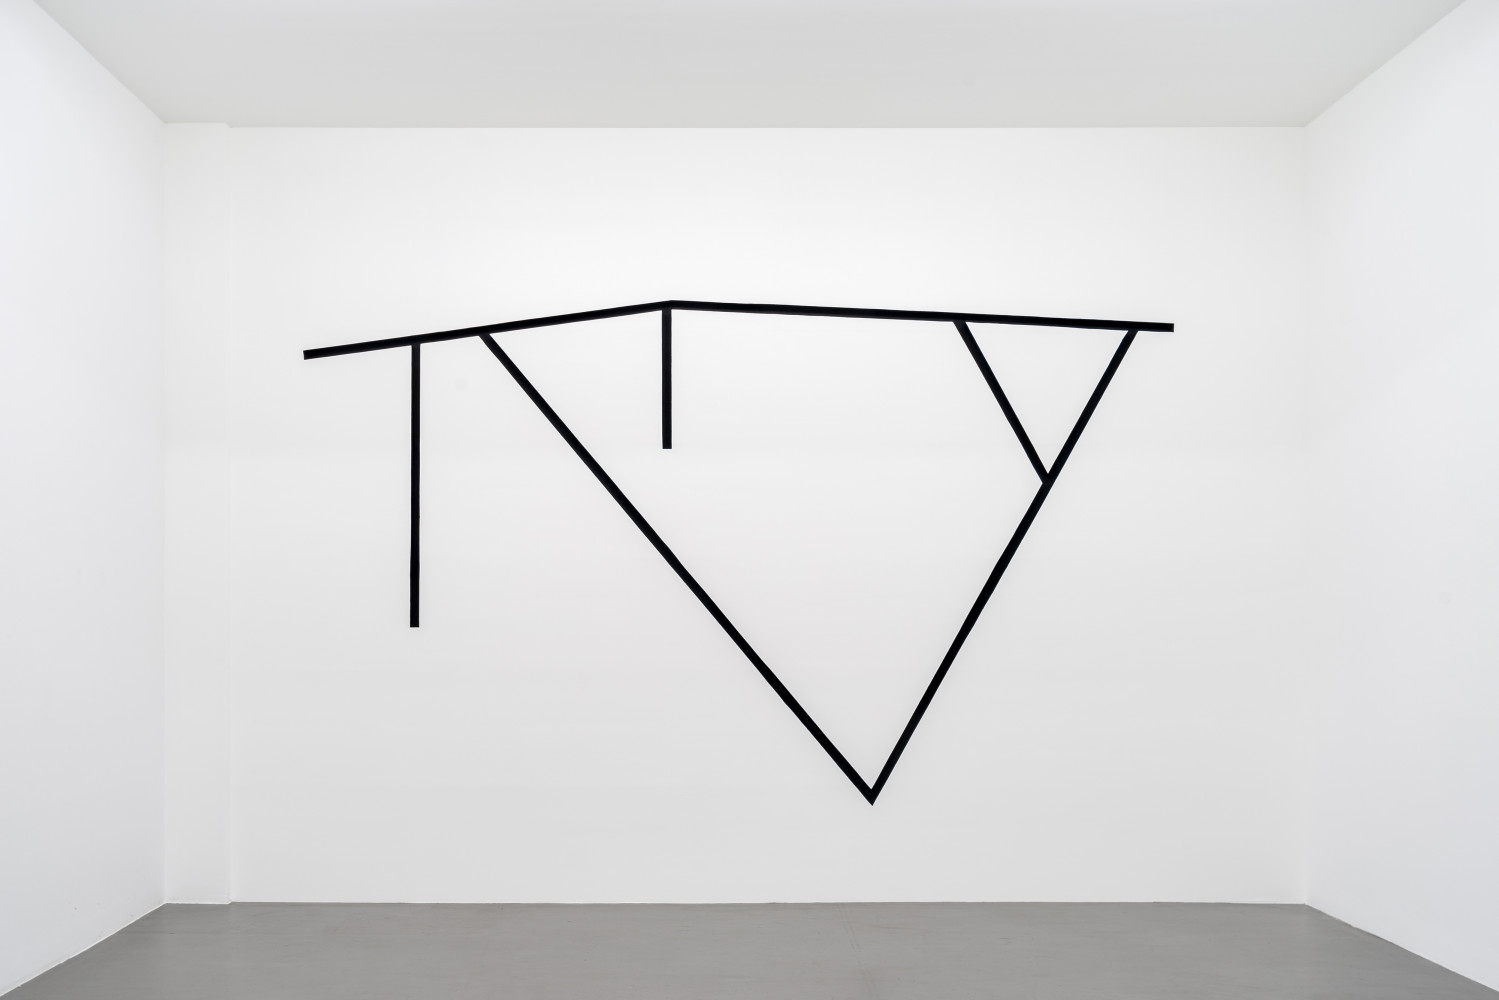 William Tucker, 'Porte VI', 1973–2020